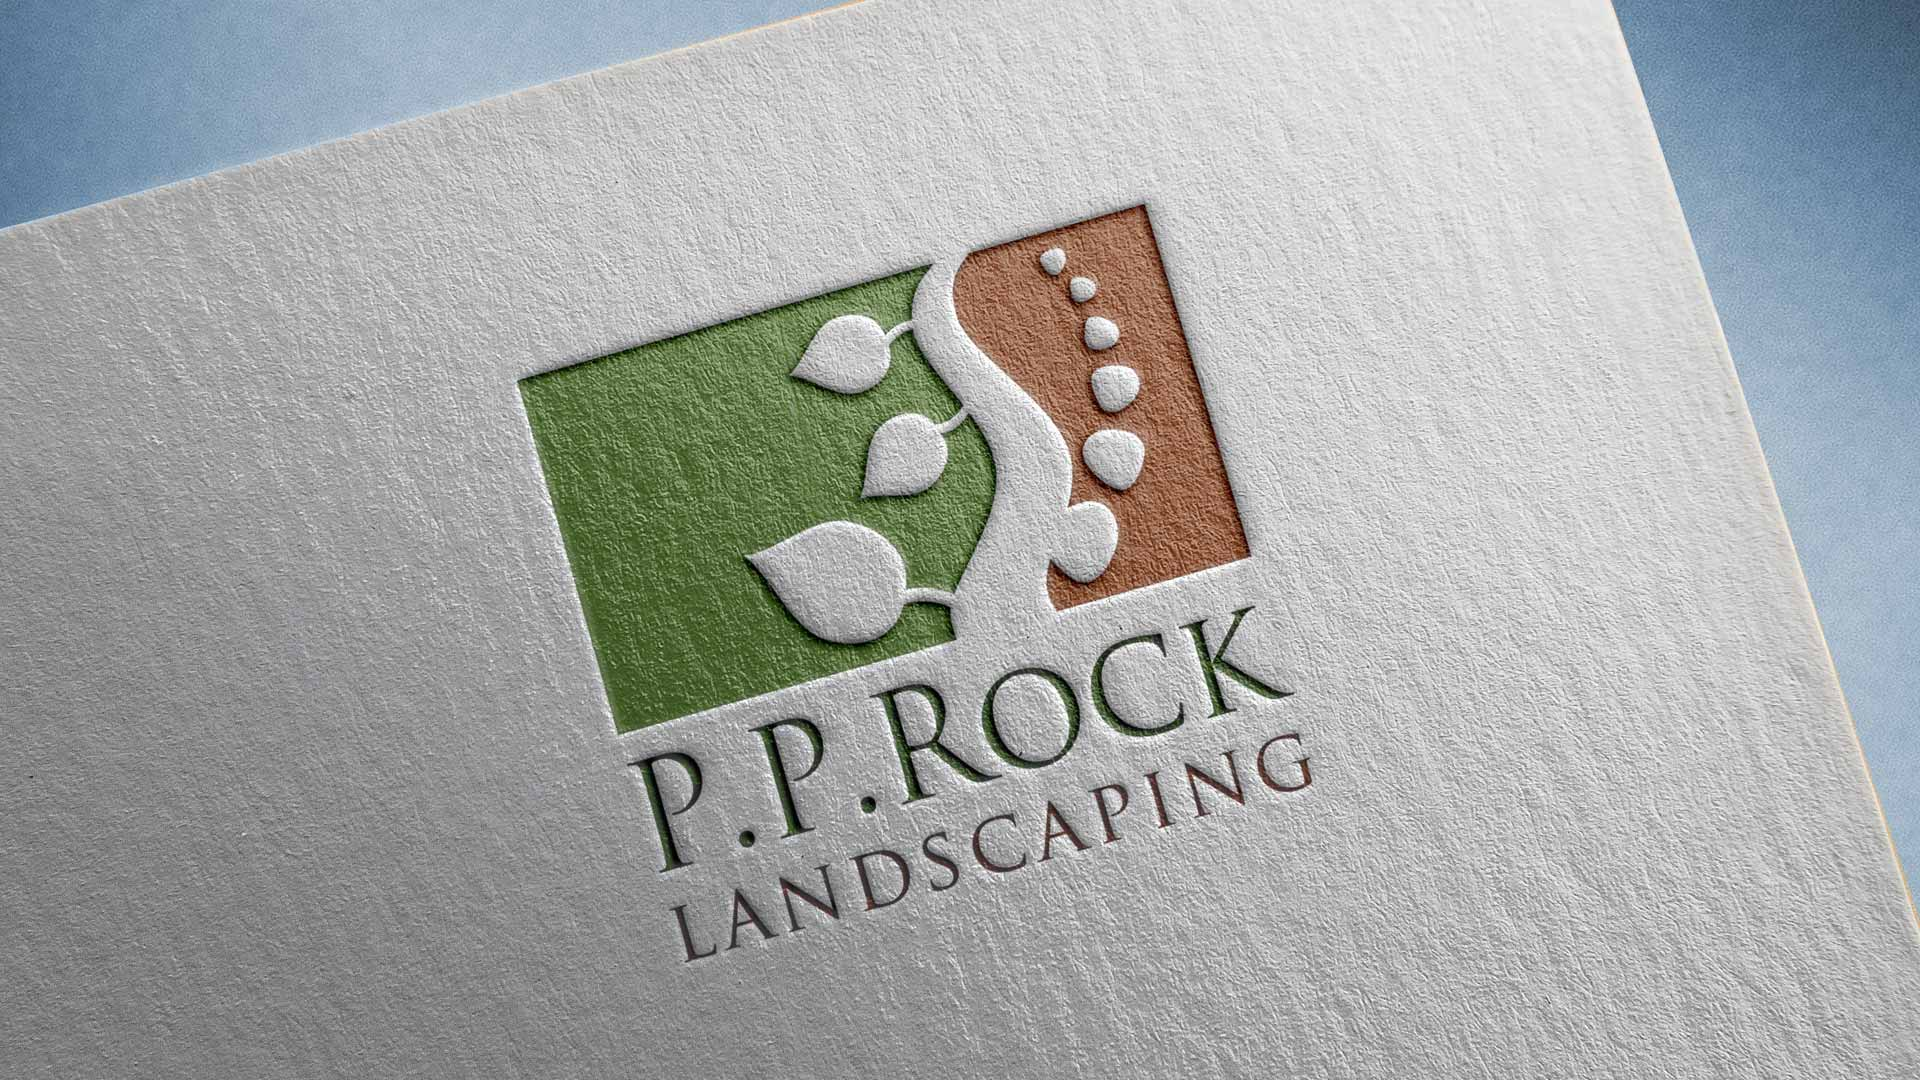 Logo design for landscaping company in Cyprus.